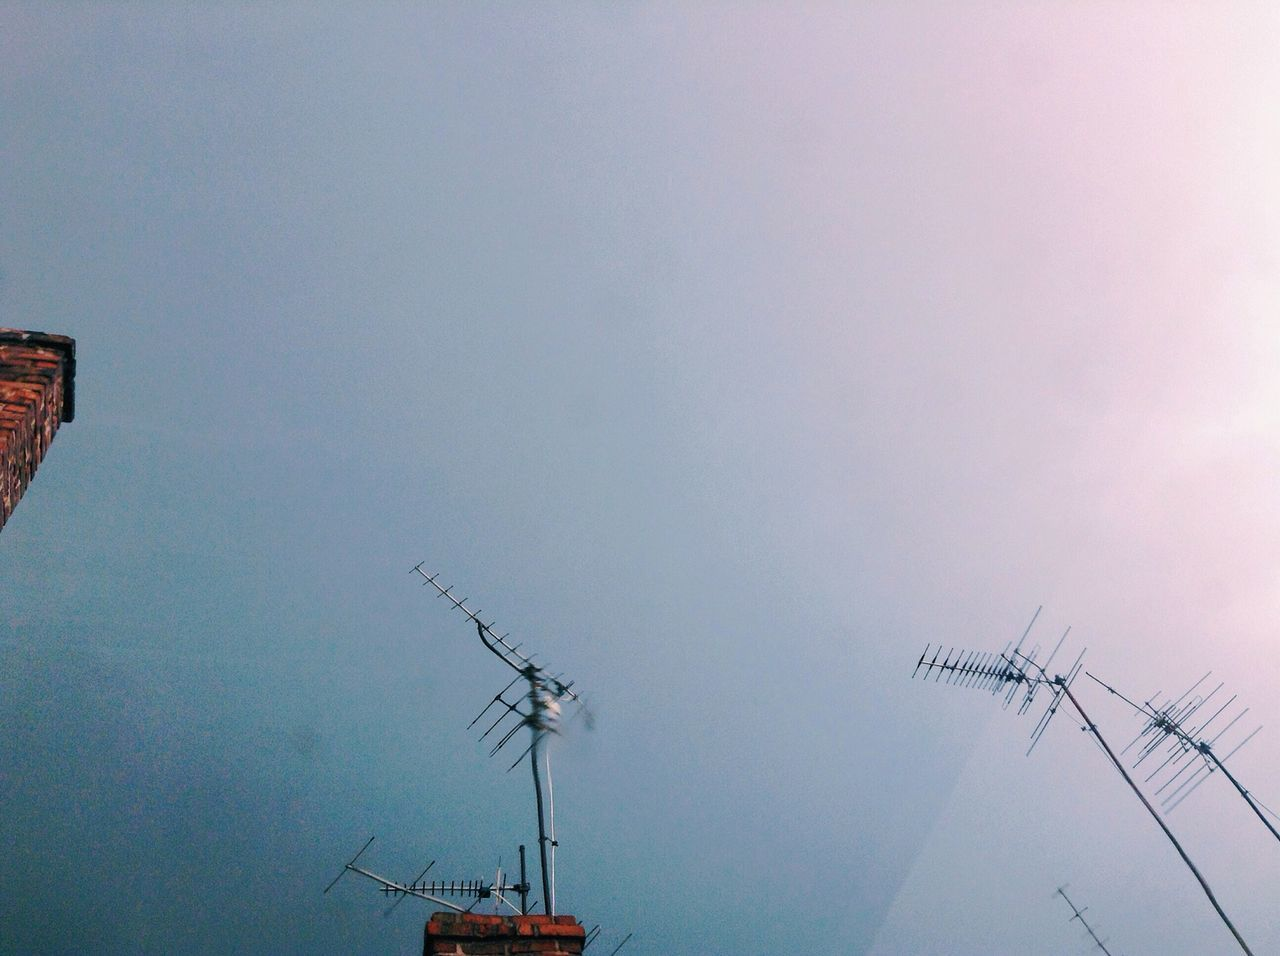 Low angle view of television aerials against clear sky